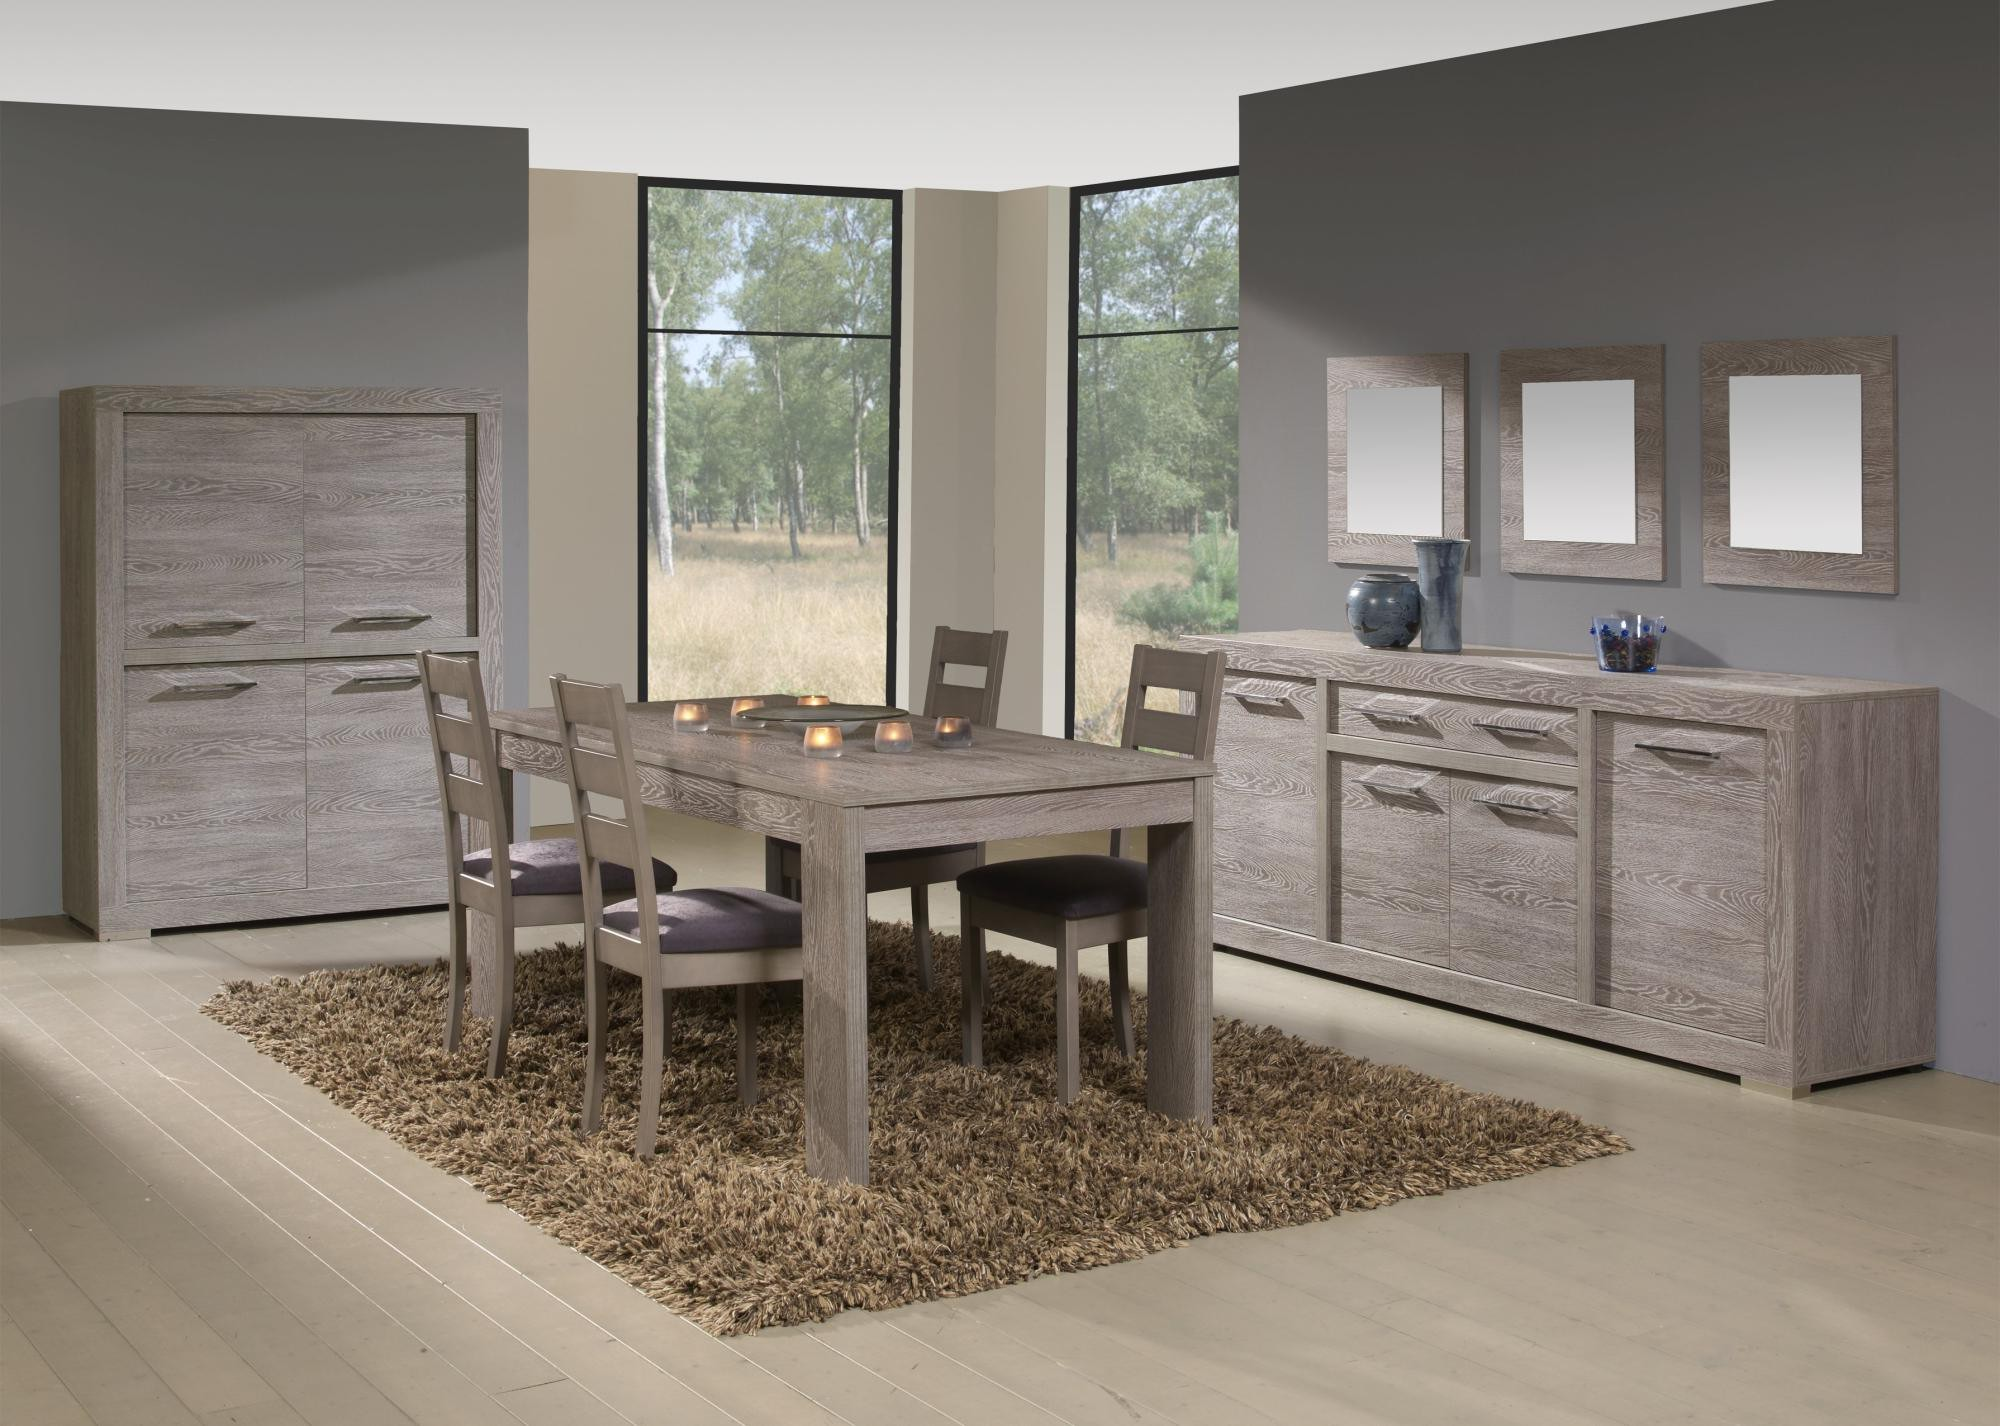 Table chaises salle manger design de maison for But salle a manger